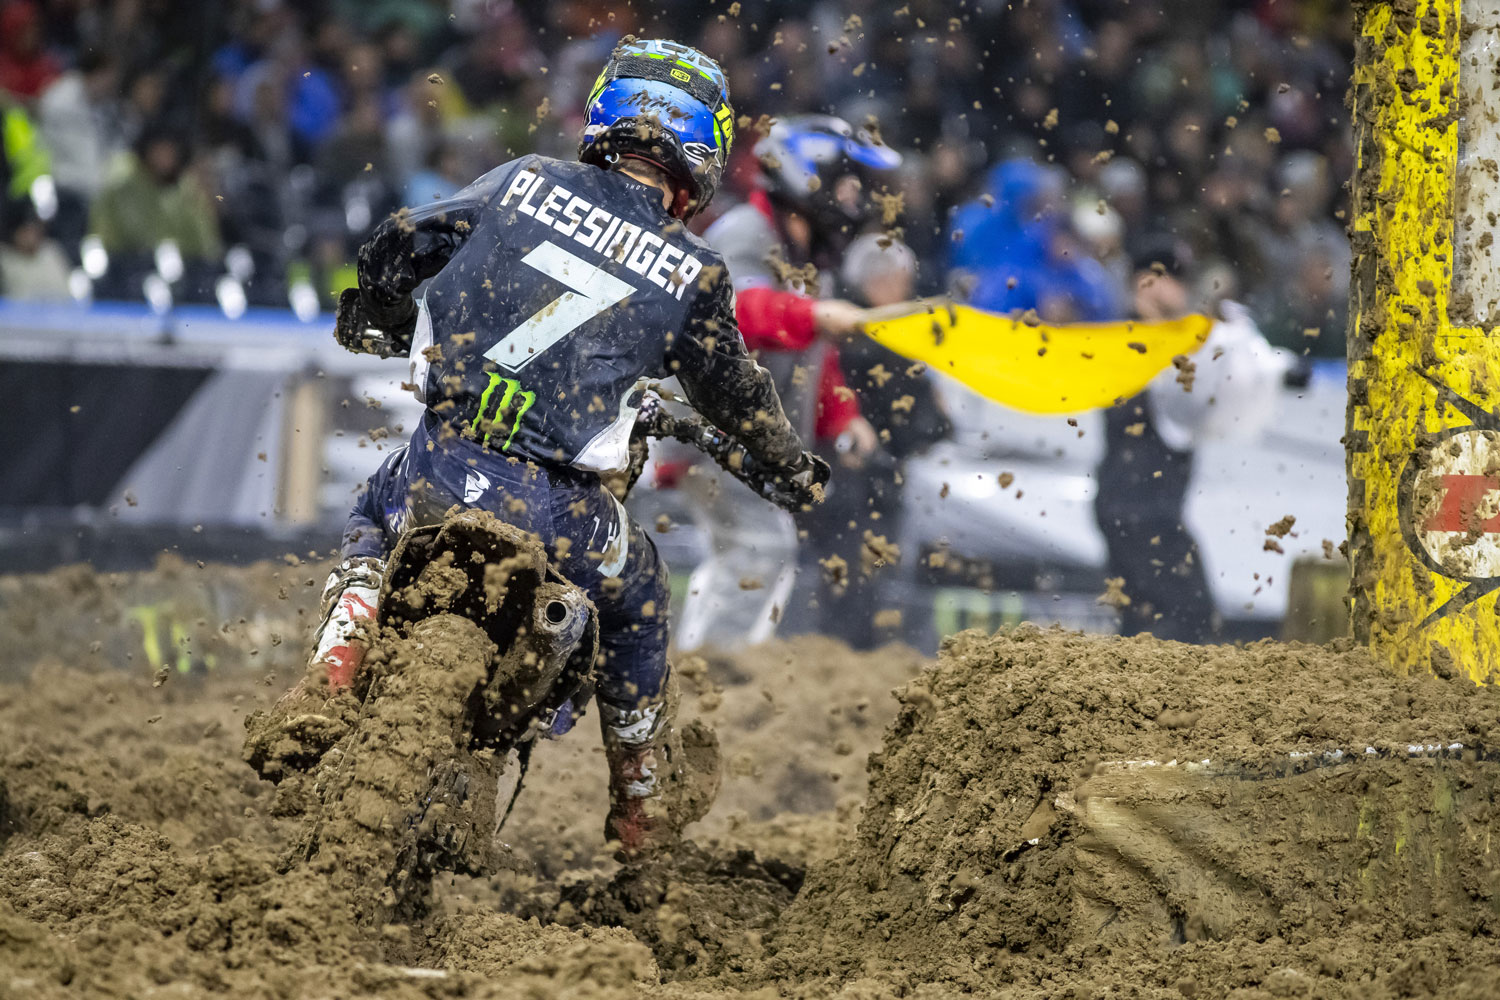 Plessinger battled in his heat race with Tomac eventually taking second.  He finished 6th in the muddy main.